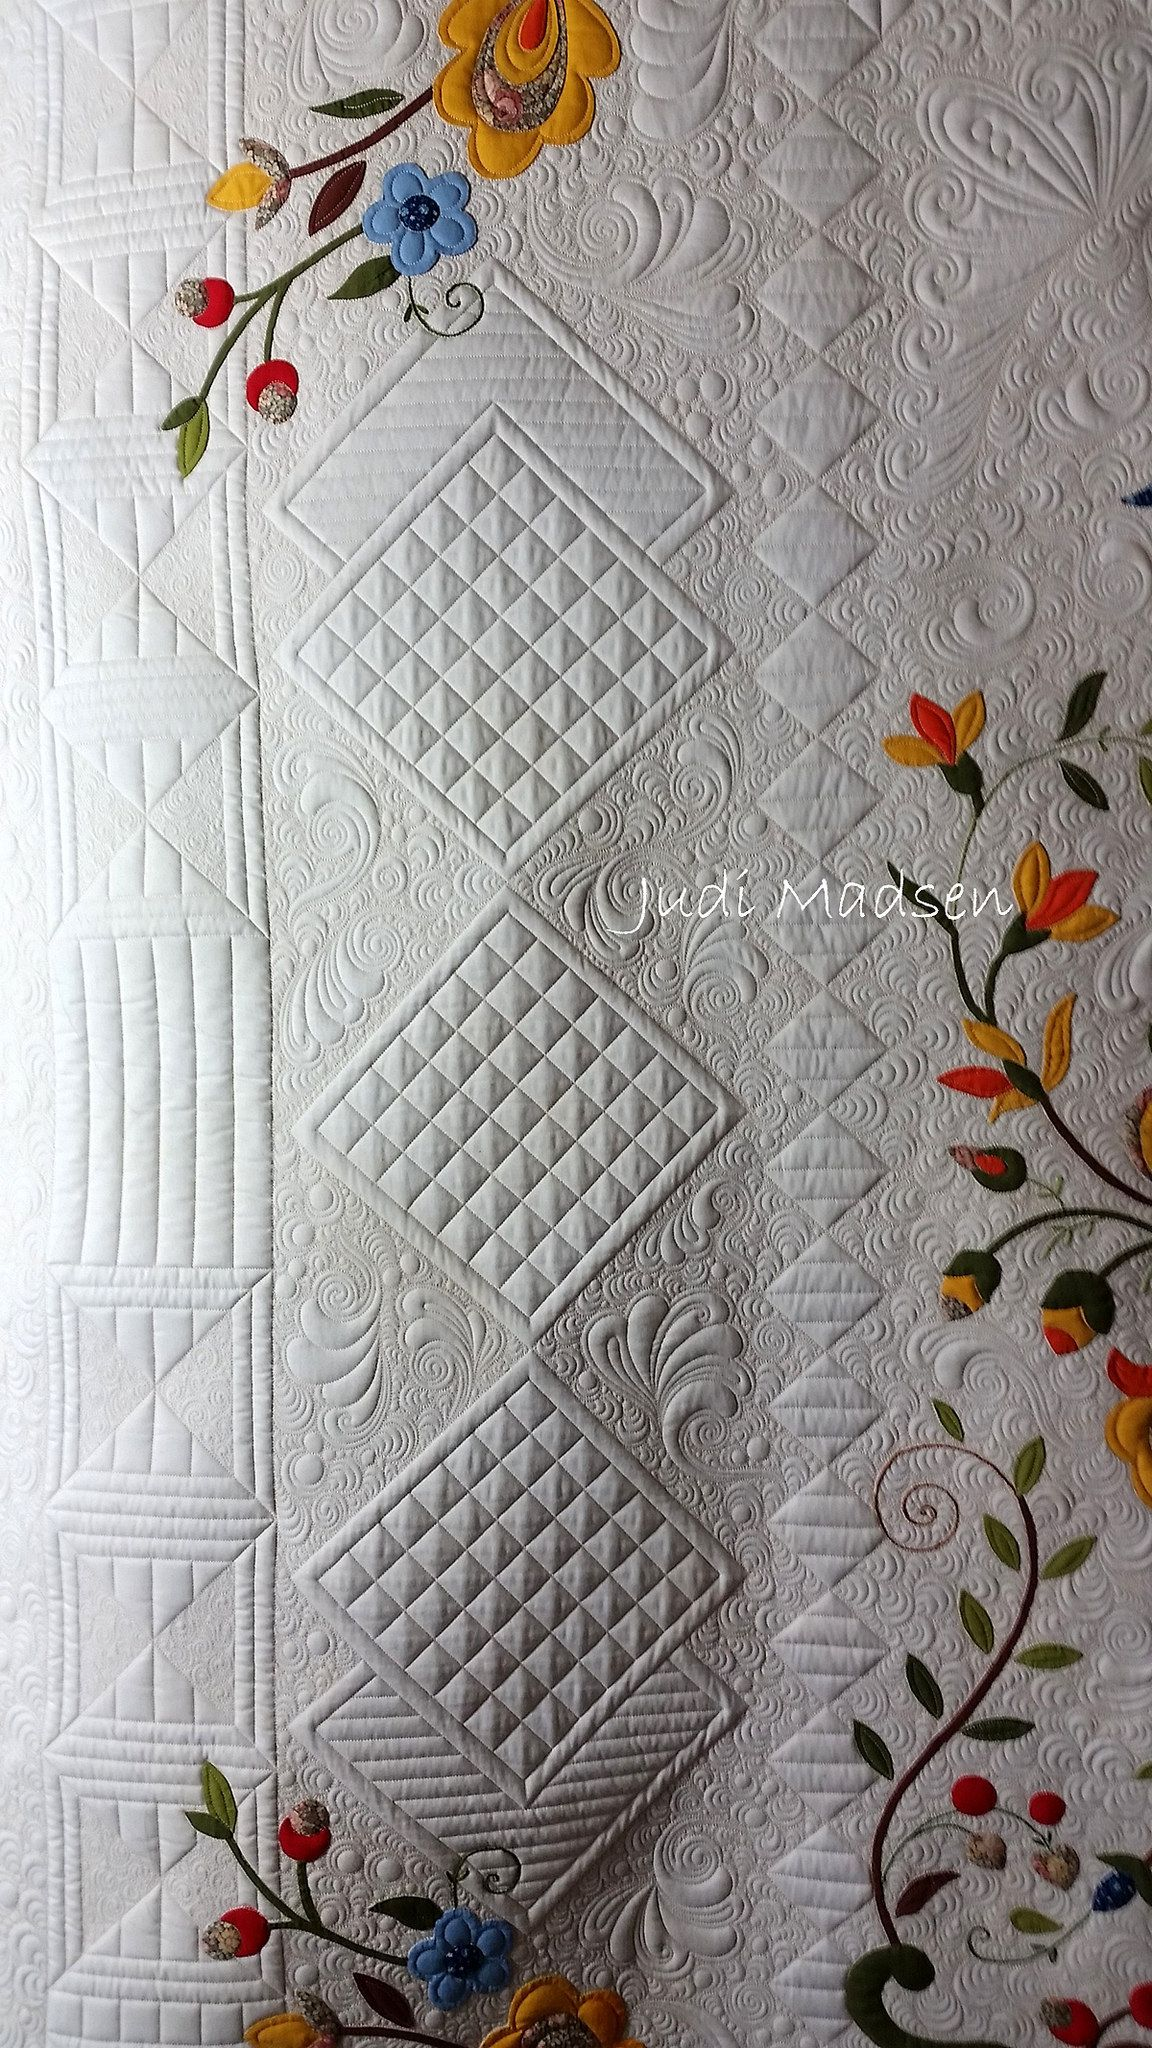 8 | Discover more ideas about Quilting designs, Free motion ... : judi madsen quilts - Adamdwight.com